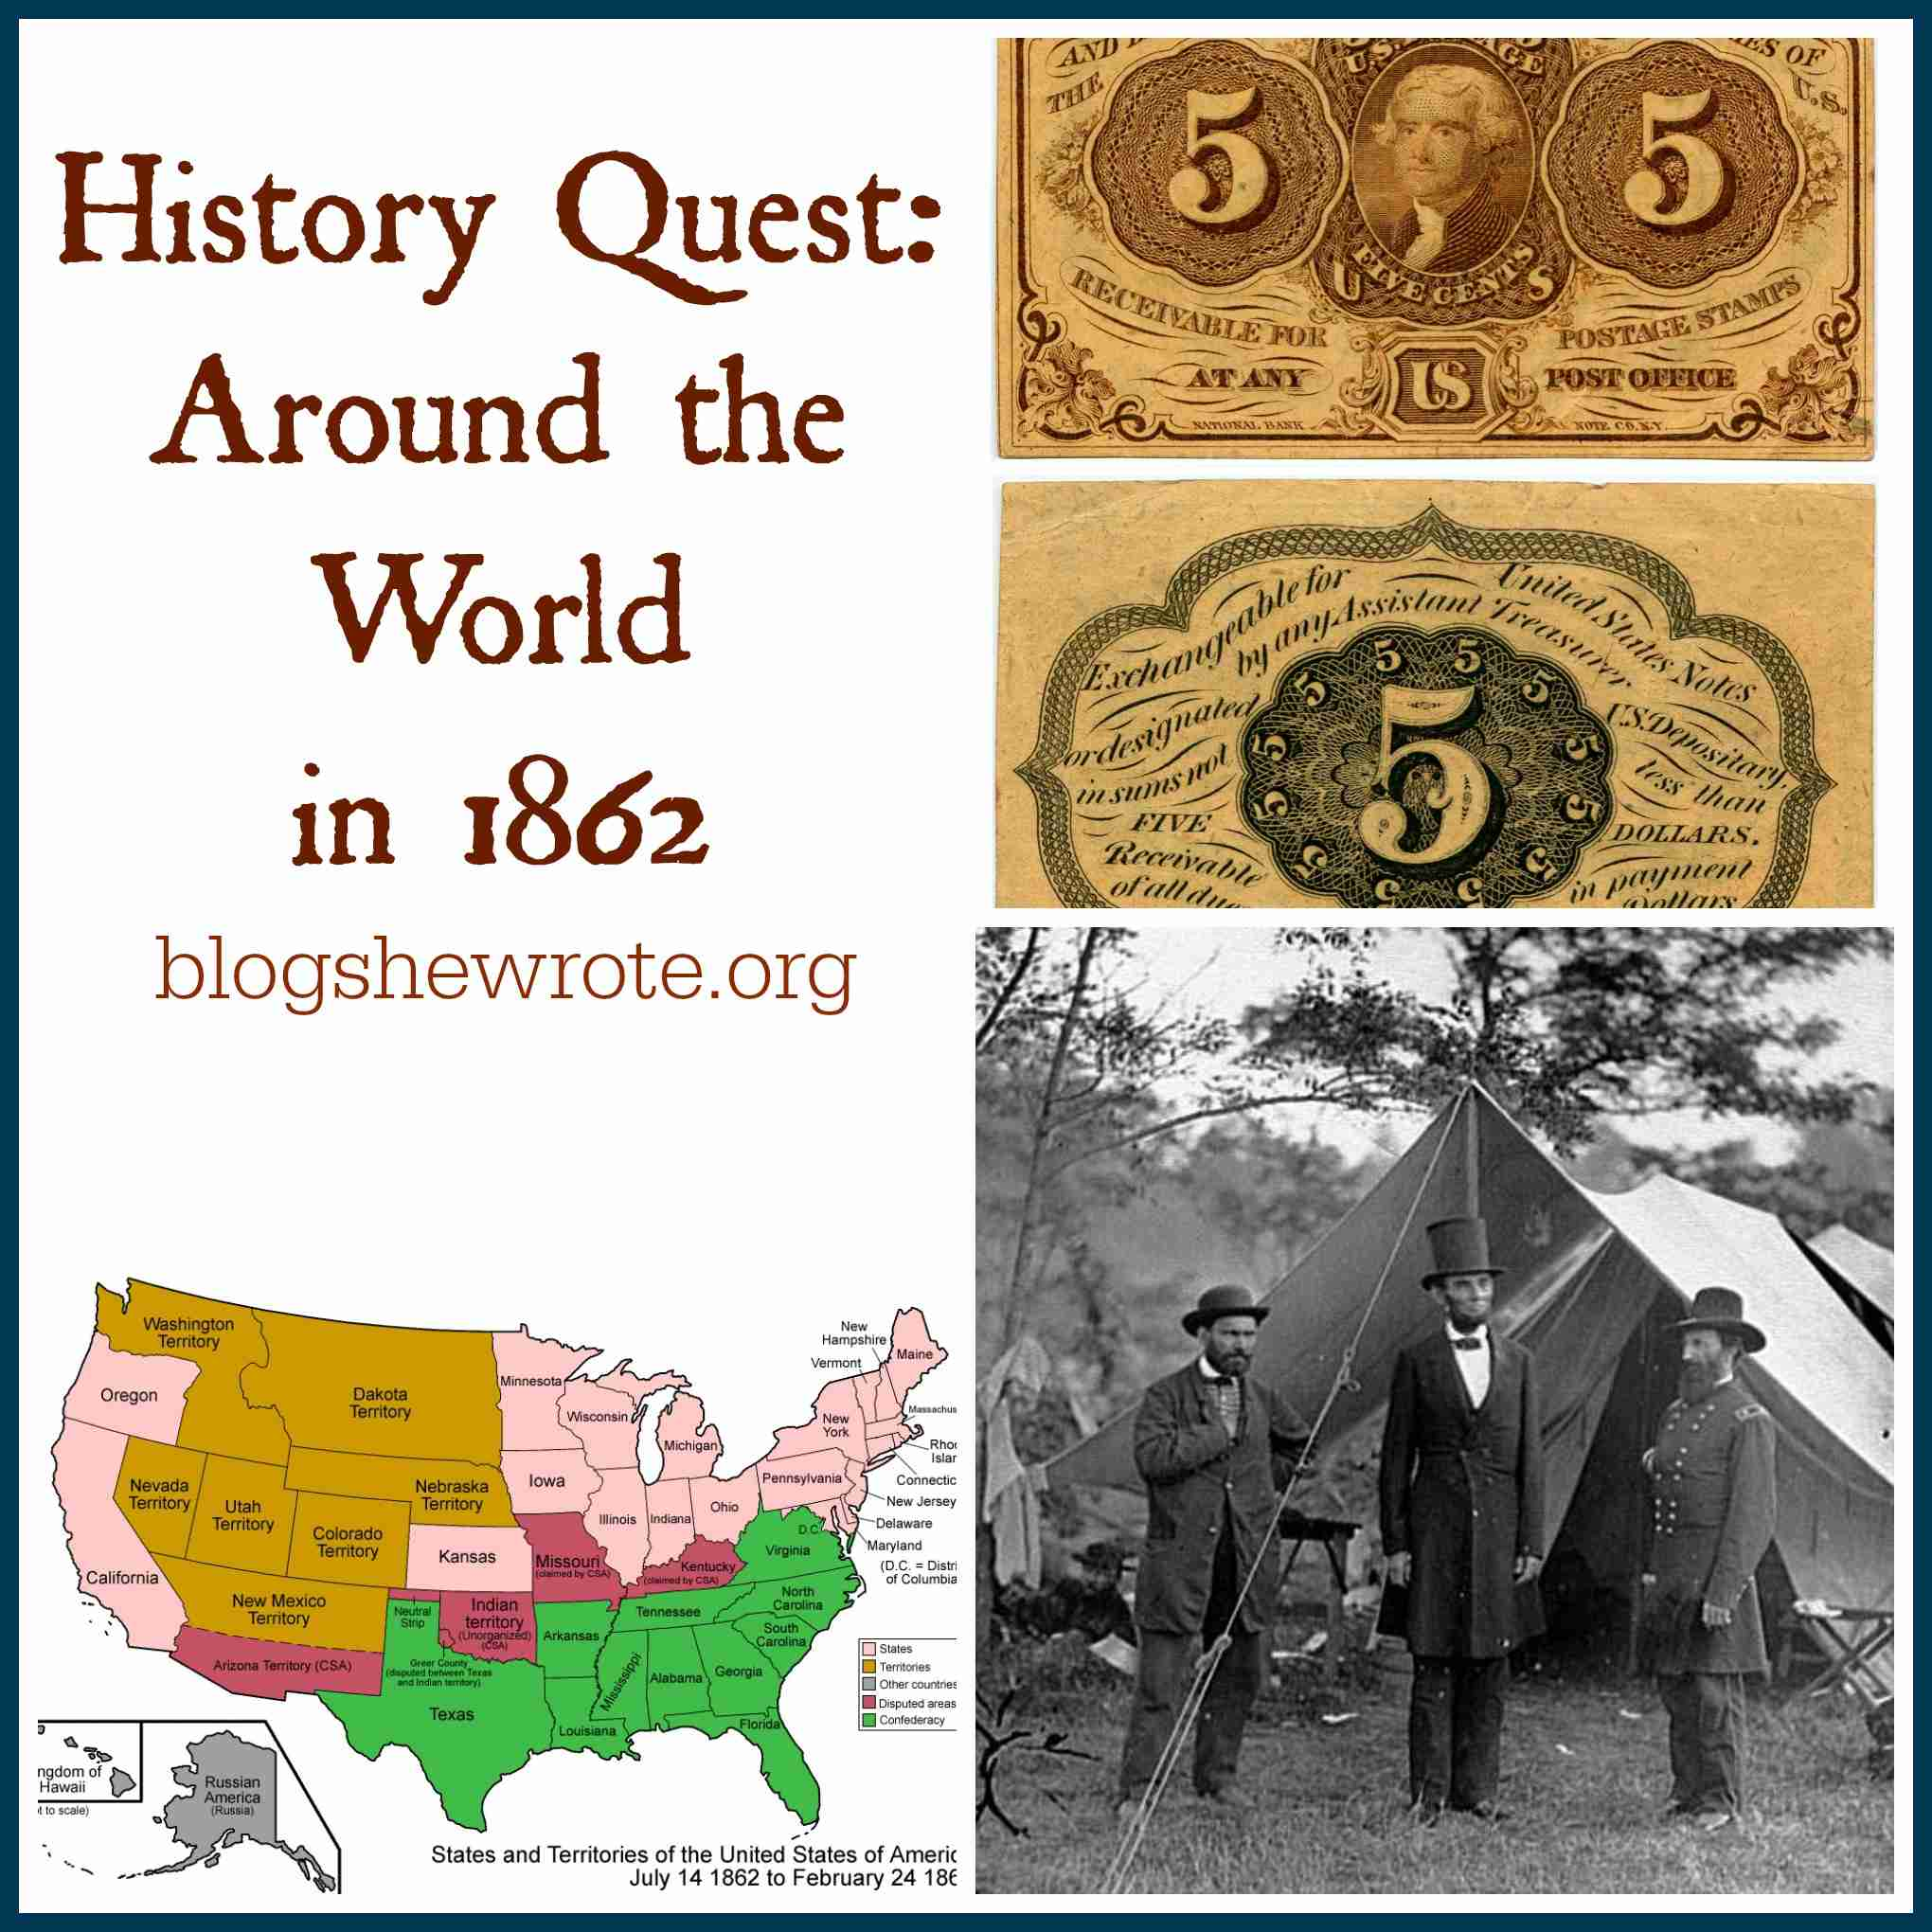 Blog, She Wrote: History Quest- Around the World in 1862